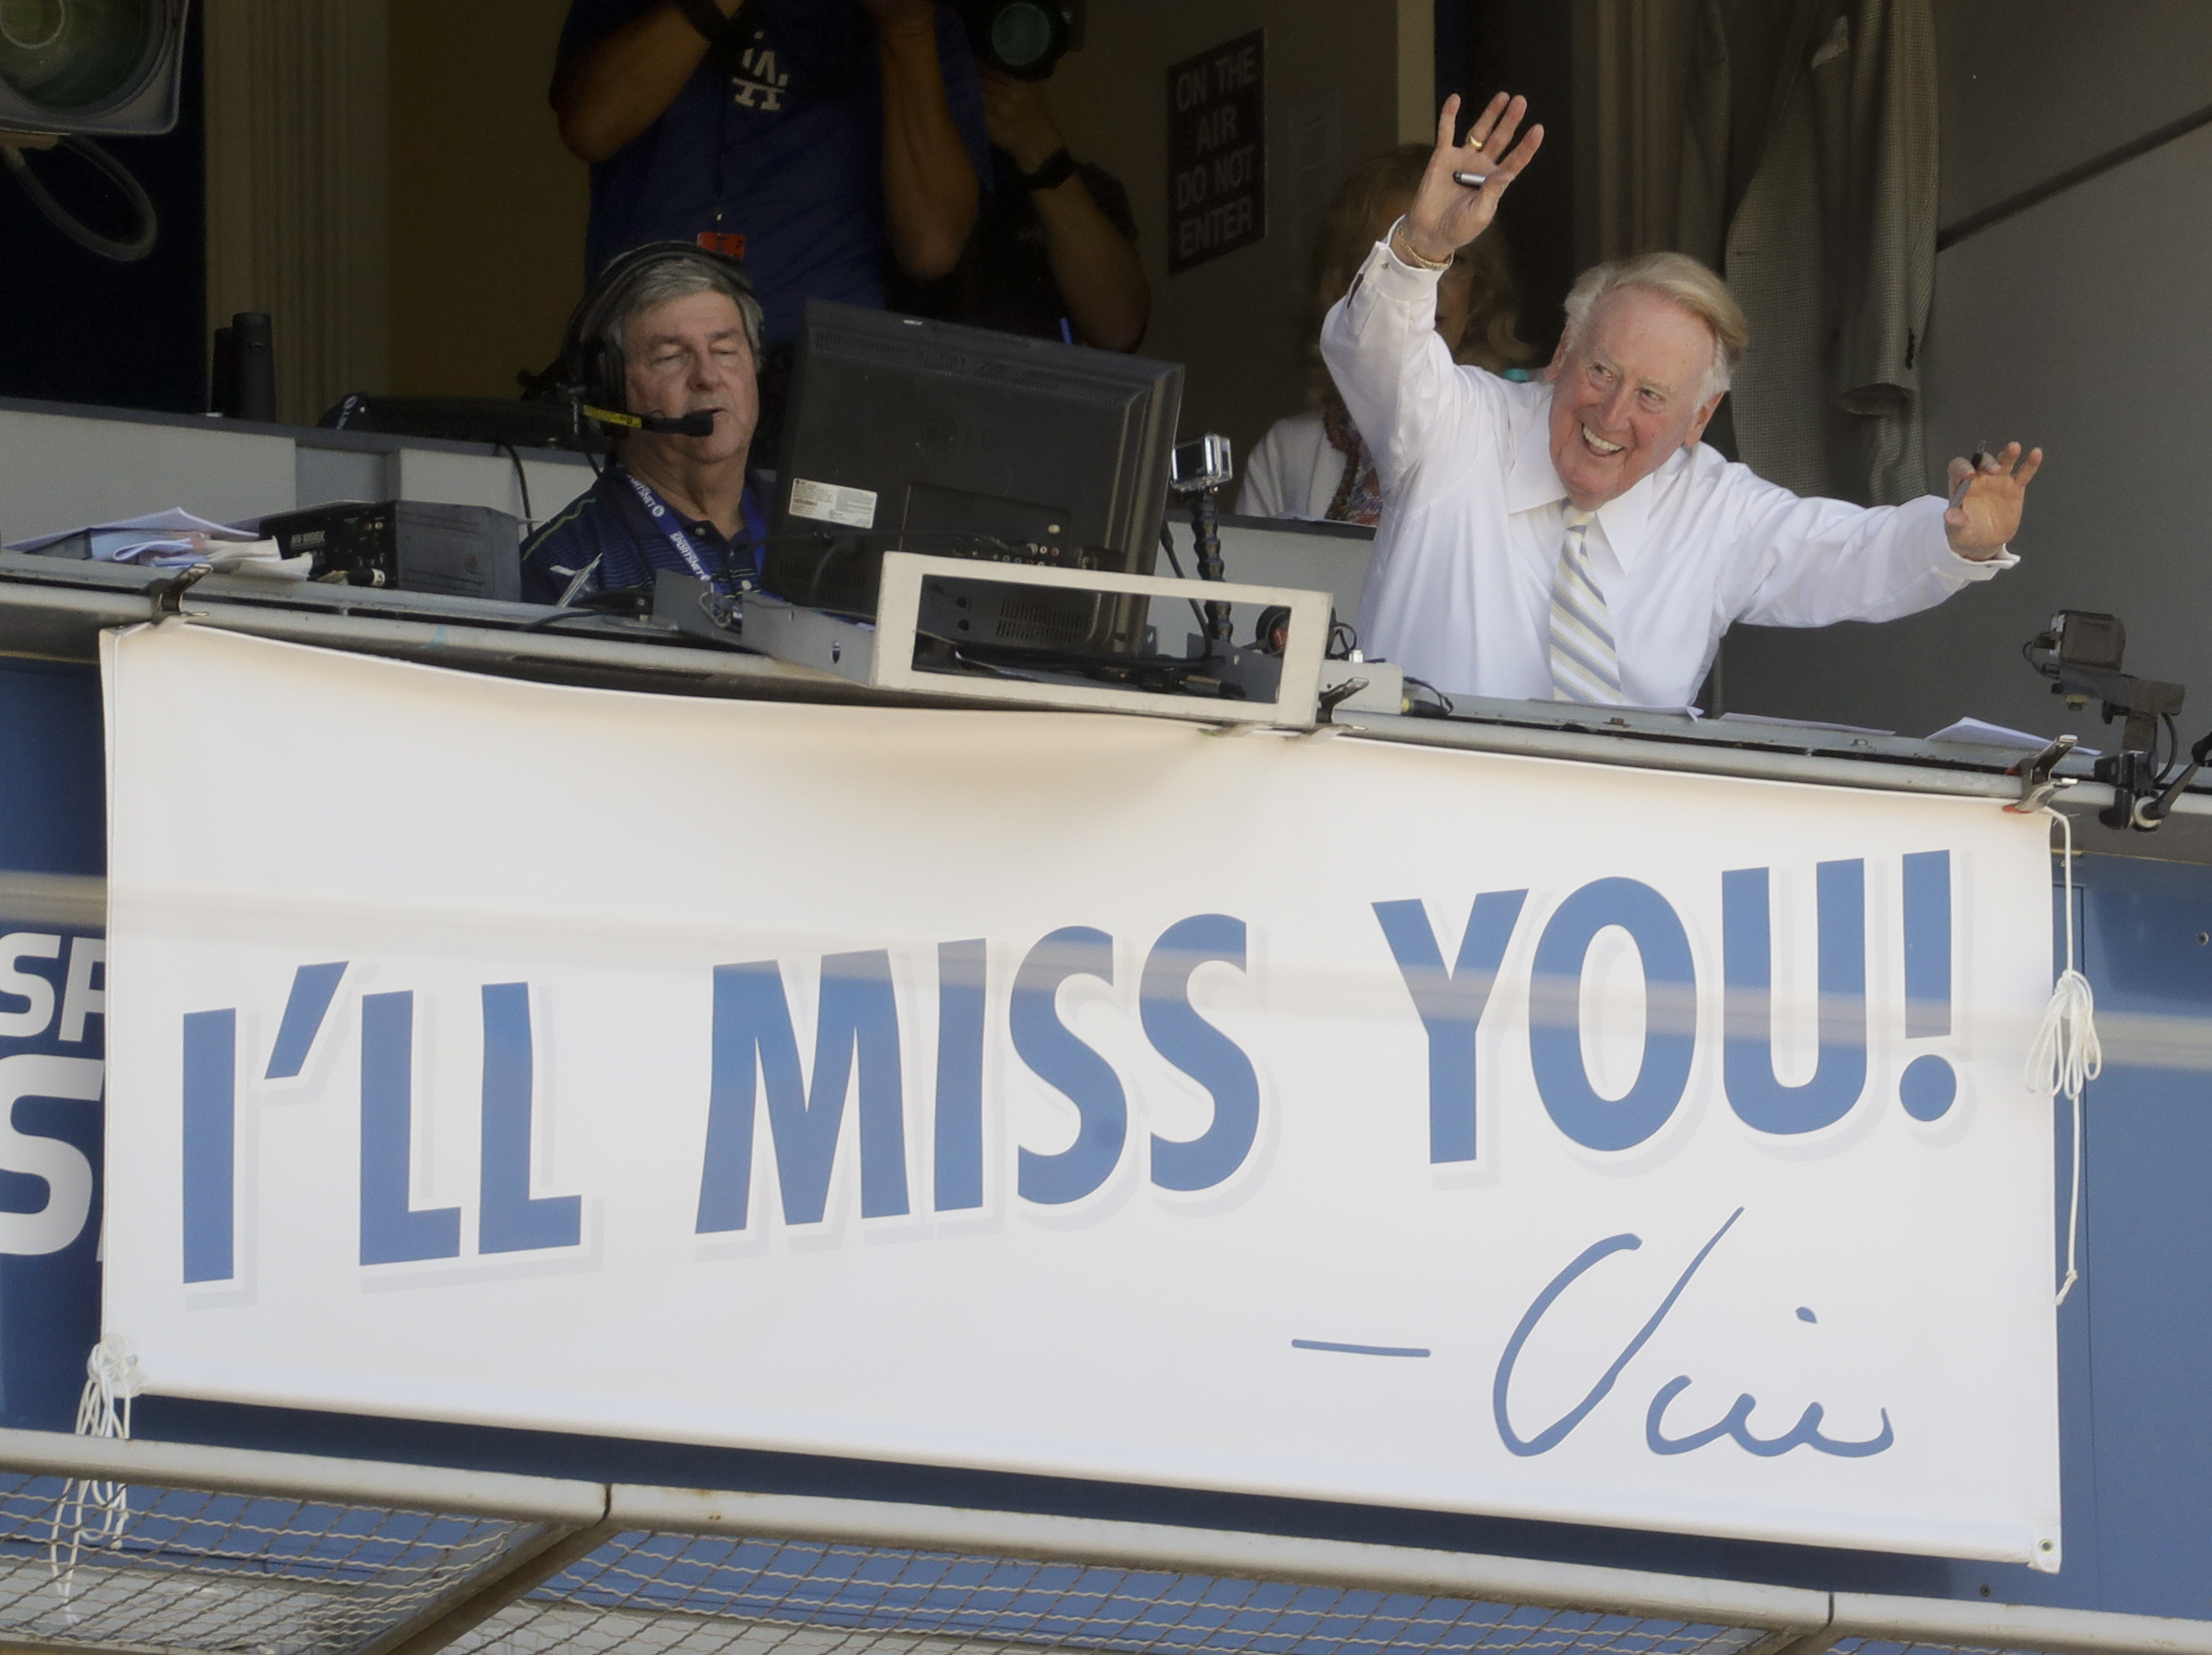 Vin Scully, a Hall of Fame broadcaster who is in the final days of his 67-year career covering Los Angeles Dodgers baseball games, waves to the fans at Dodger Stadium before a baseball game against the Colorado Rockies in Los Angeles, Sunday, Sept. 25, 20